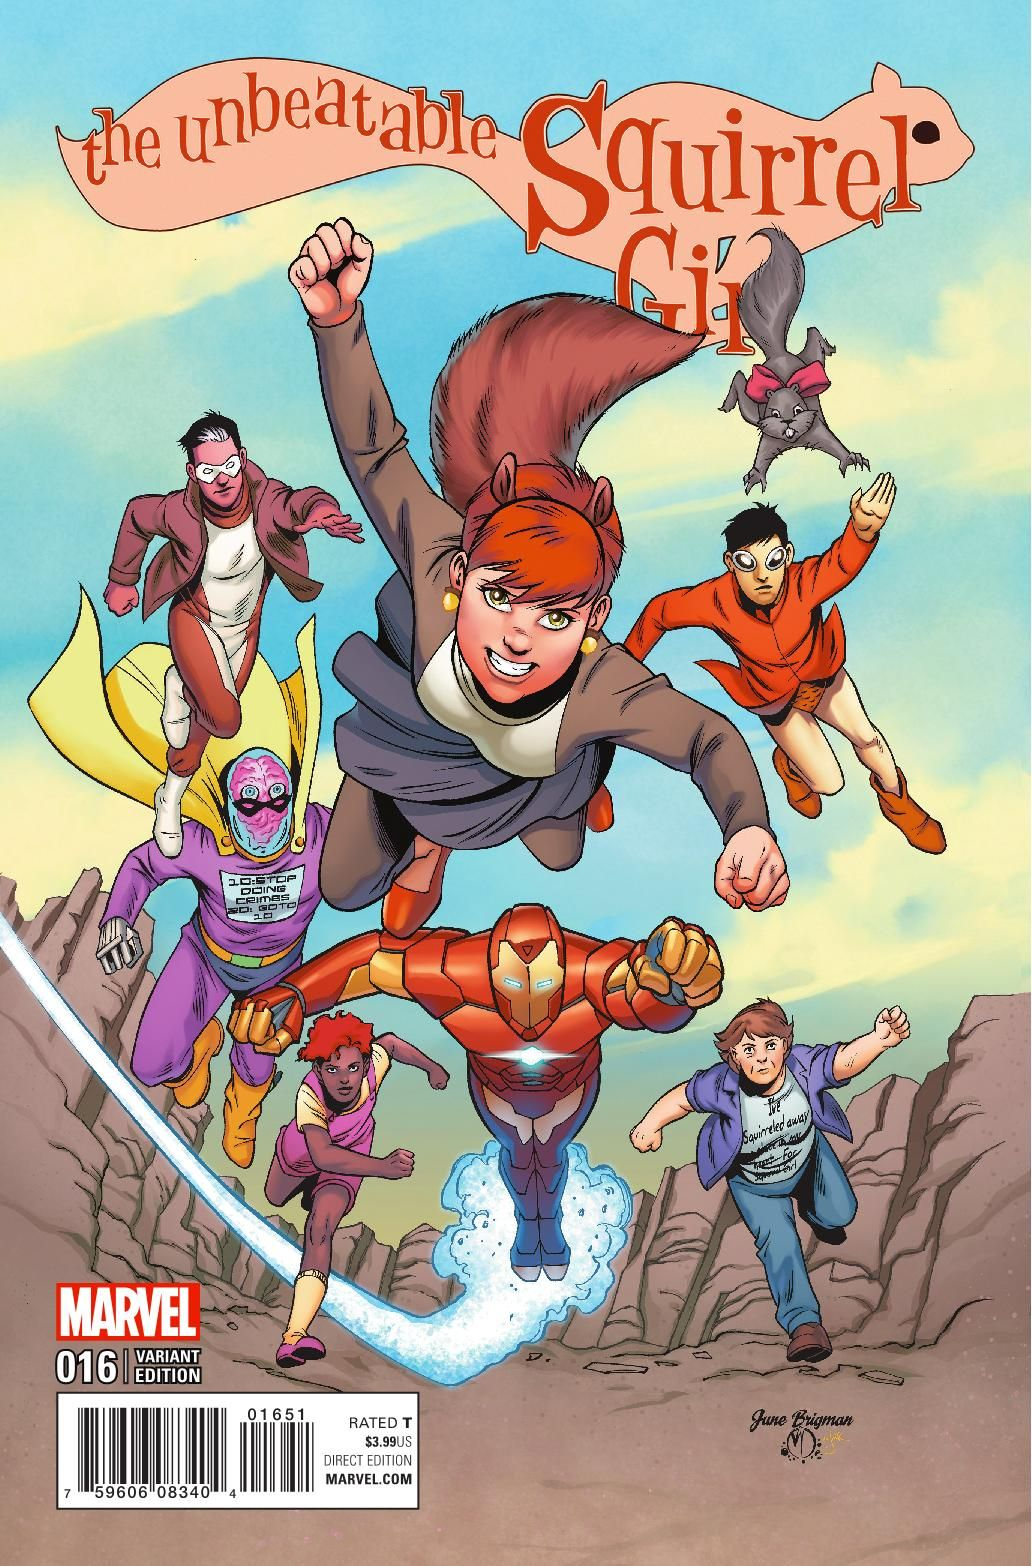 Preview: The Unbeatable Squirrel Girl #16, Story: Ryan North Art: Erica